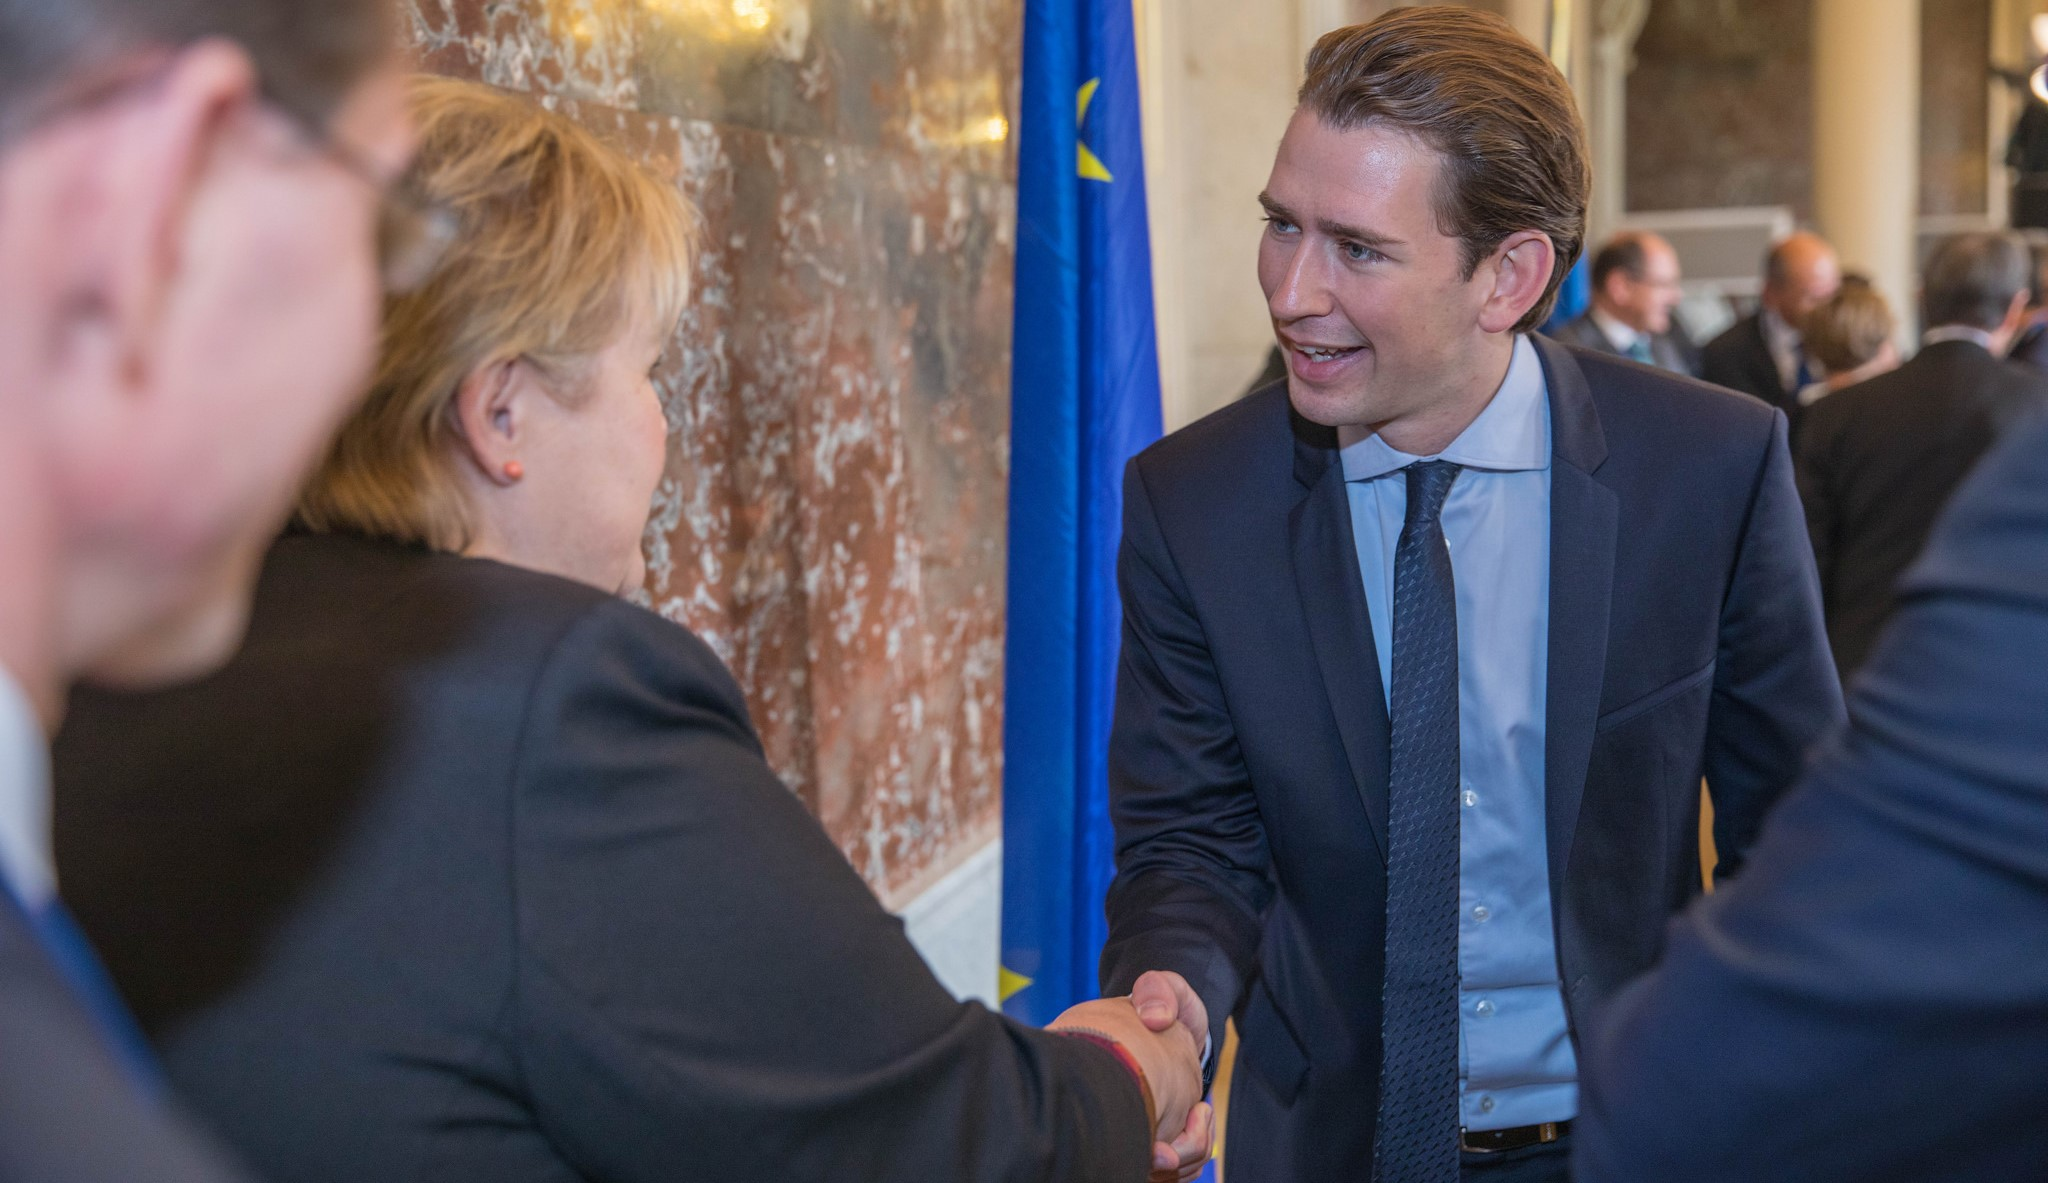 Incoming Chancellor of Austria Sebastian Kurz, October 2017 (Photo: European People's Party/Flickr)